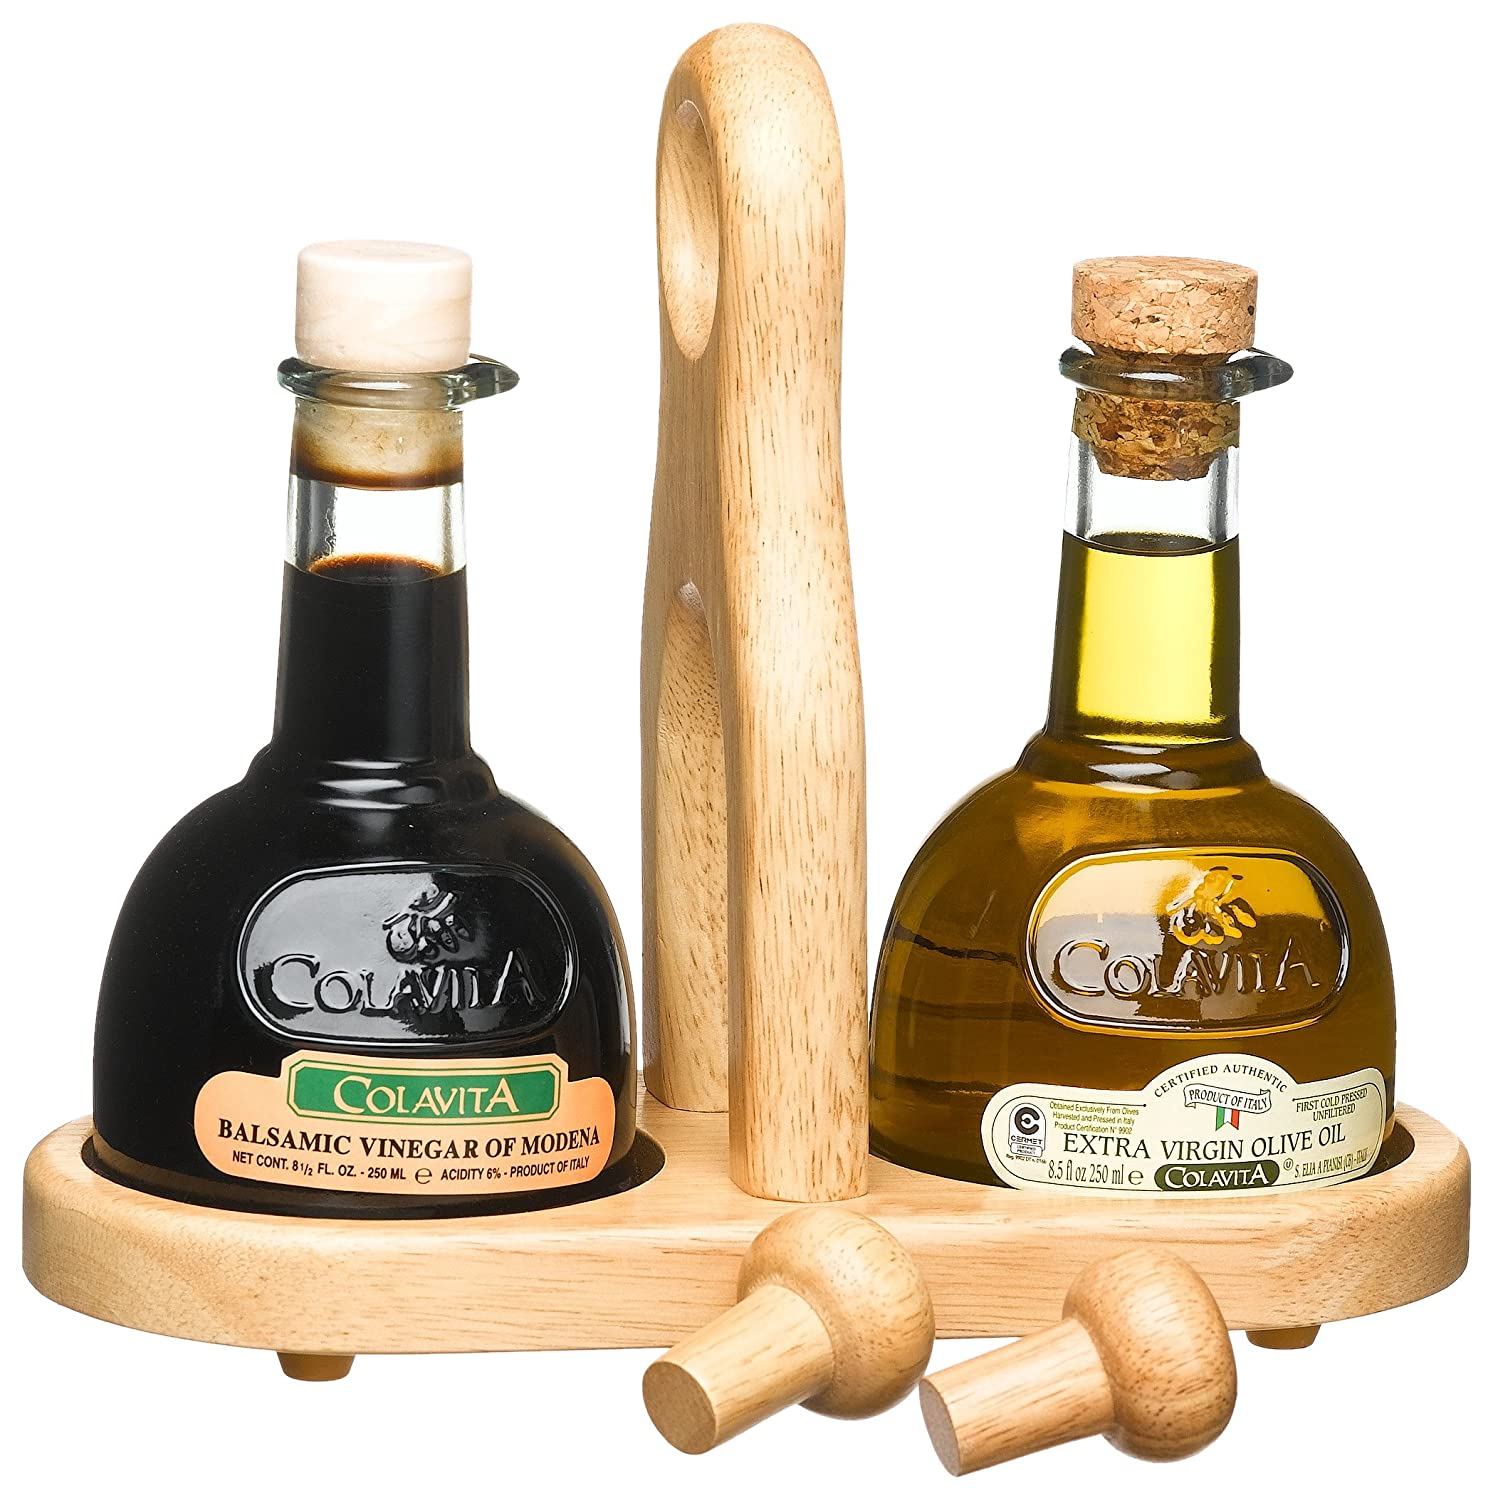 amazoncom  colavita extra virgin olive oil and balsamic vinegar  - amazoncom  colavita extra virgin olive oil and balsamic vinegar cruetsets (pack of )  grocery  gourmet food